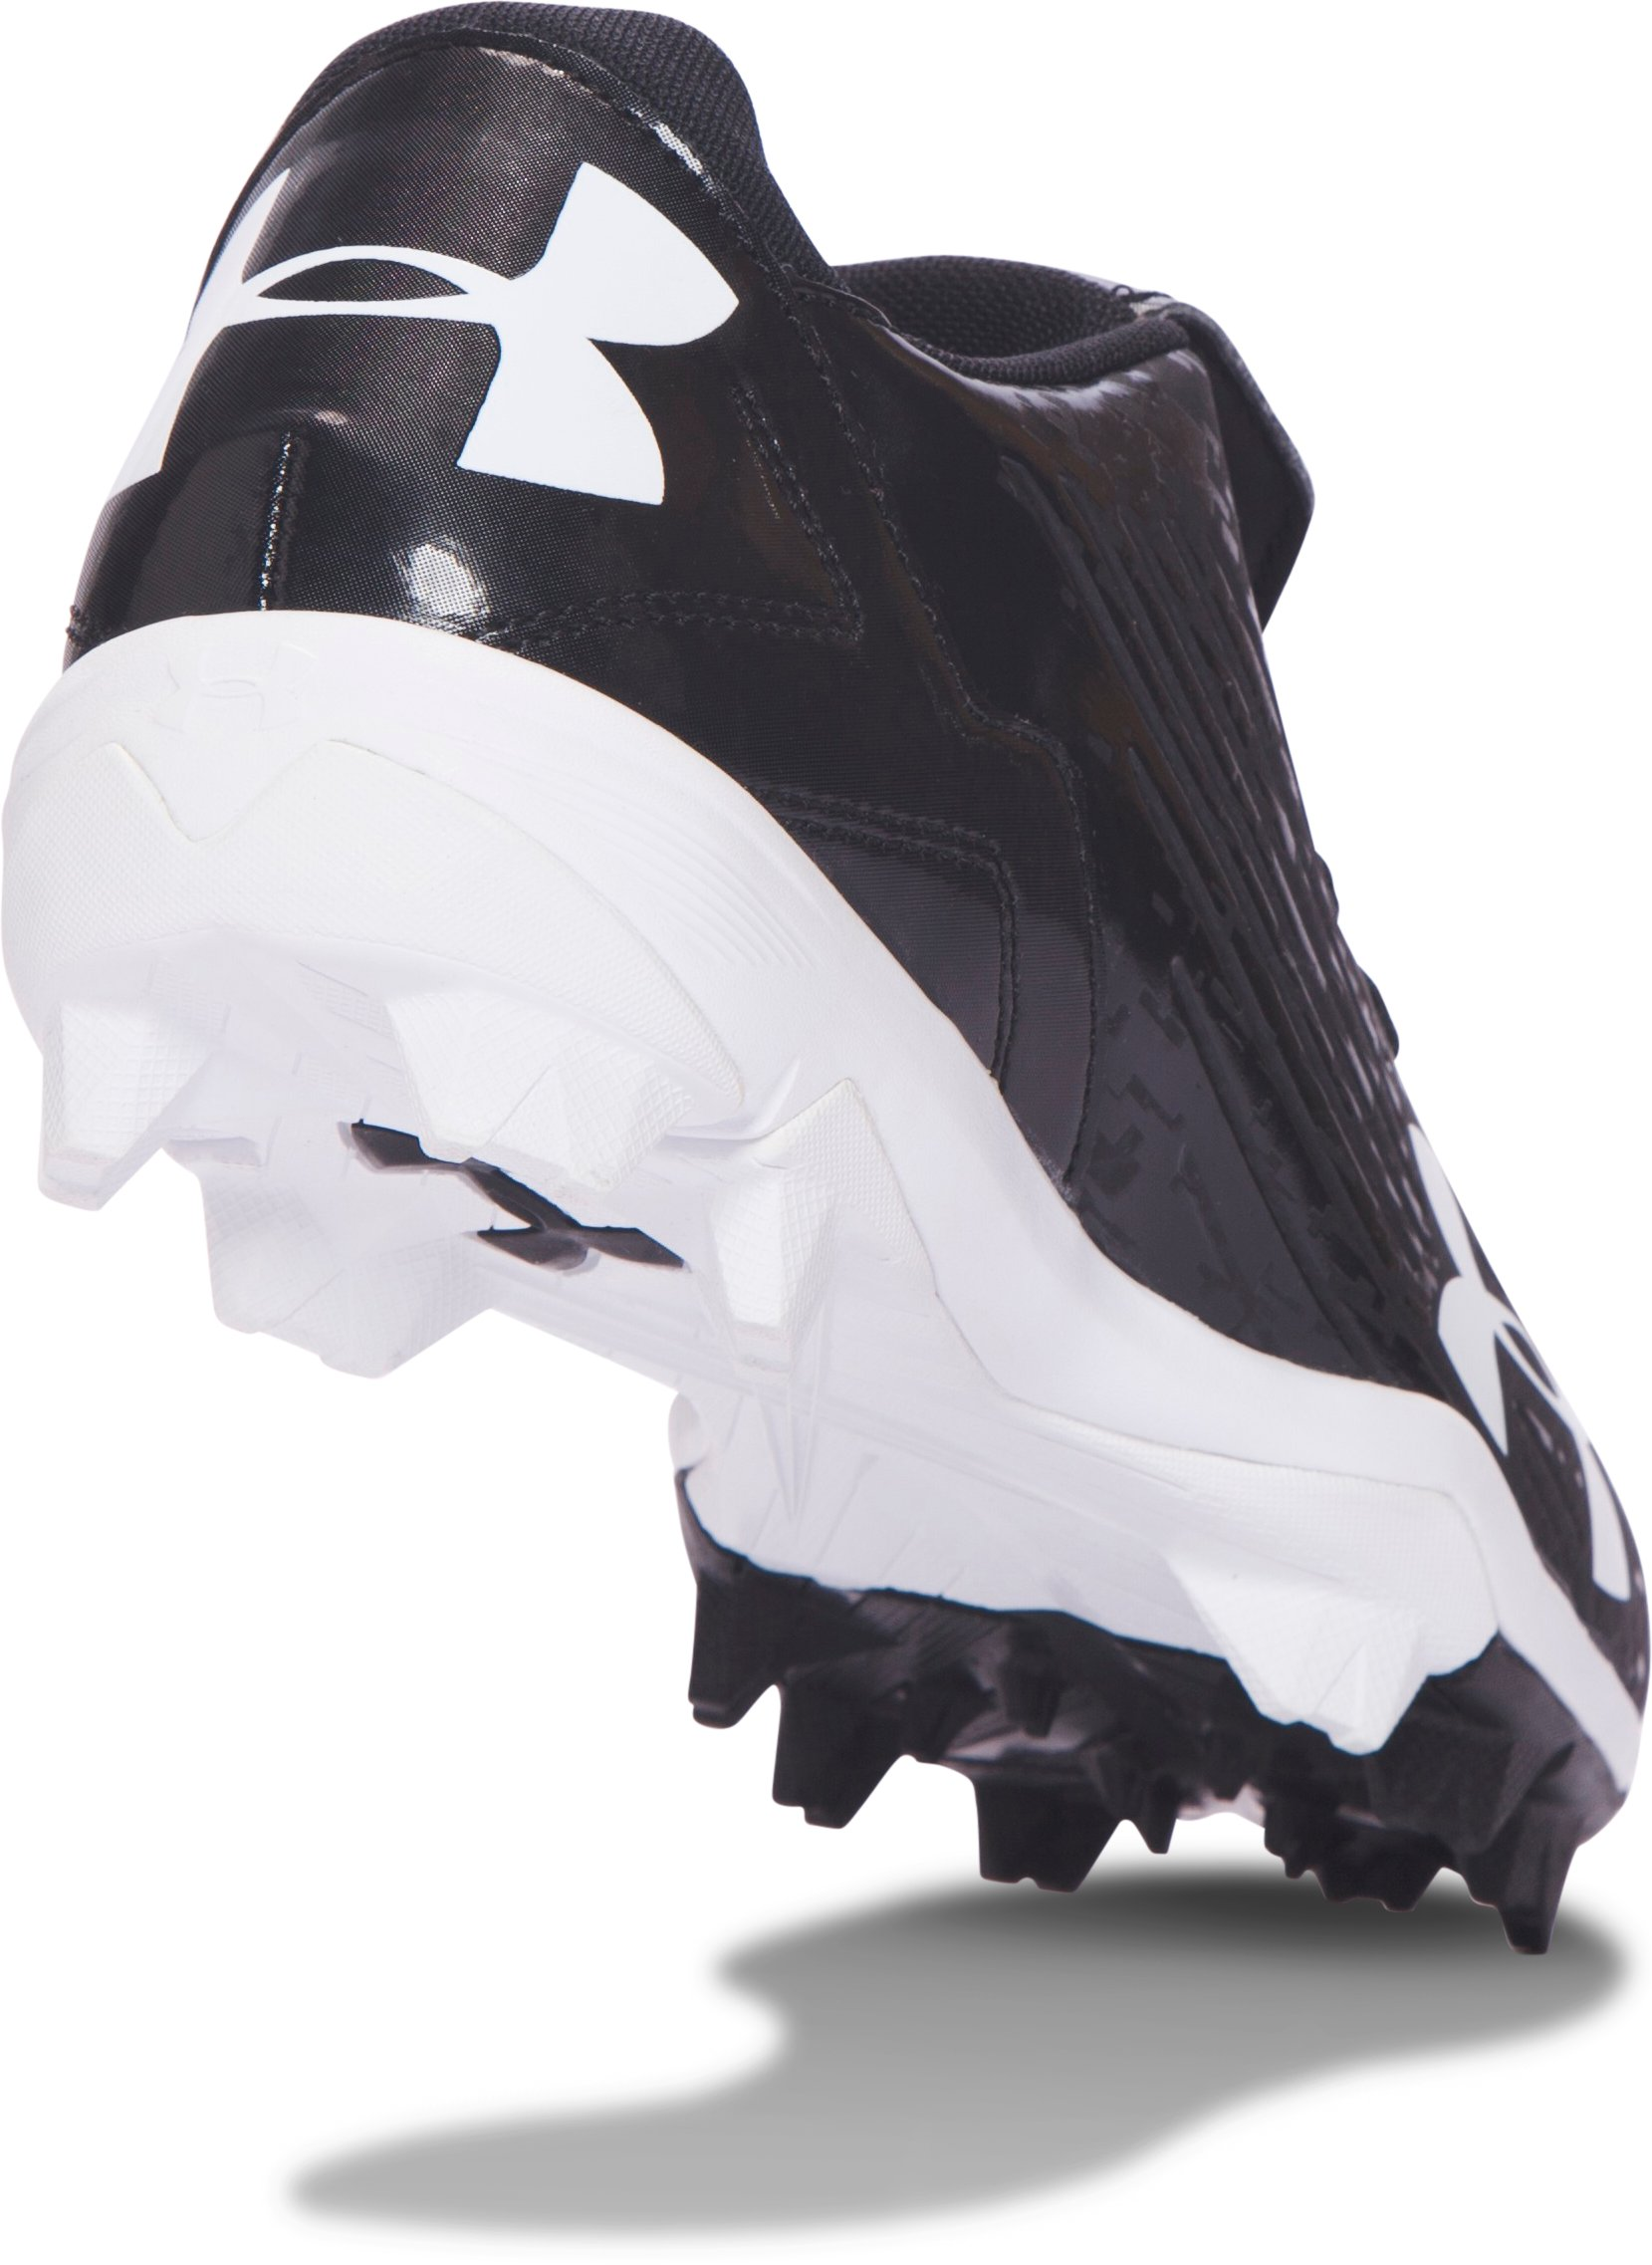 Boys' UA MLB Switch Low Jr. Baseball Cleats, Black ,